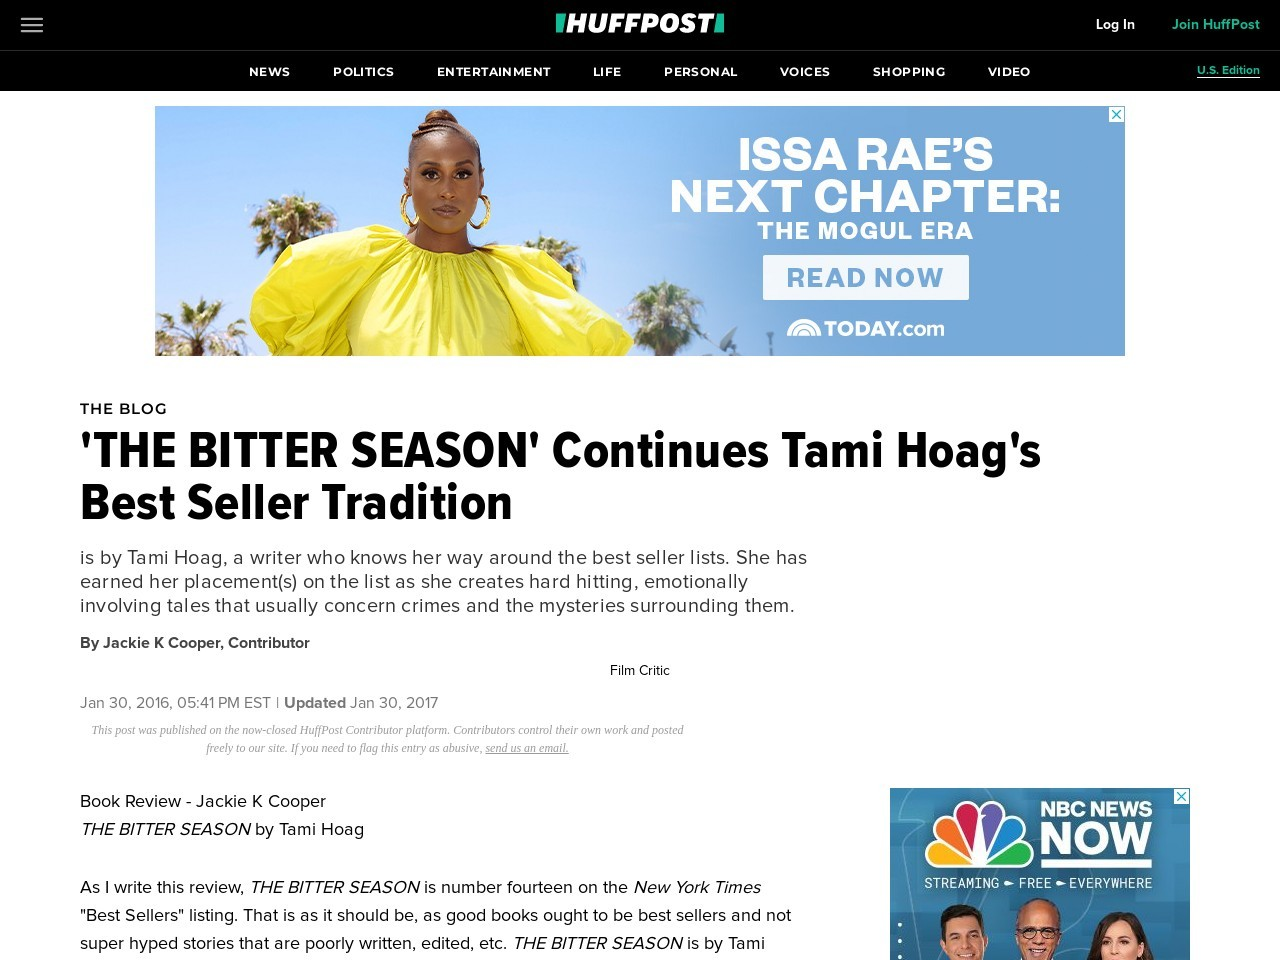 'THE BITTER SEASON' Continues Tami Hoag's Best Seller Tradition